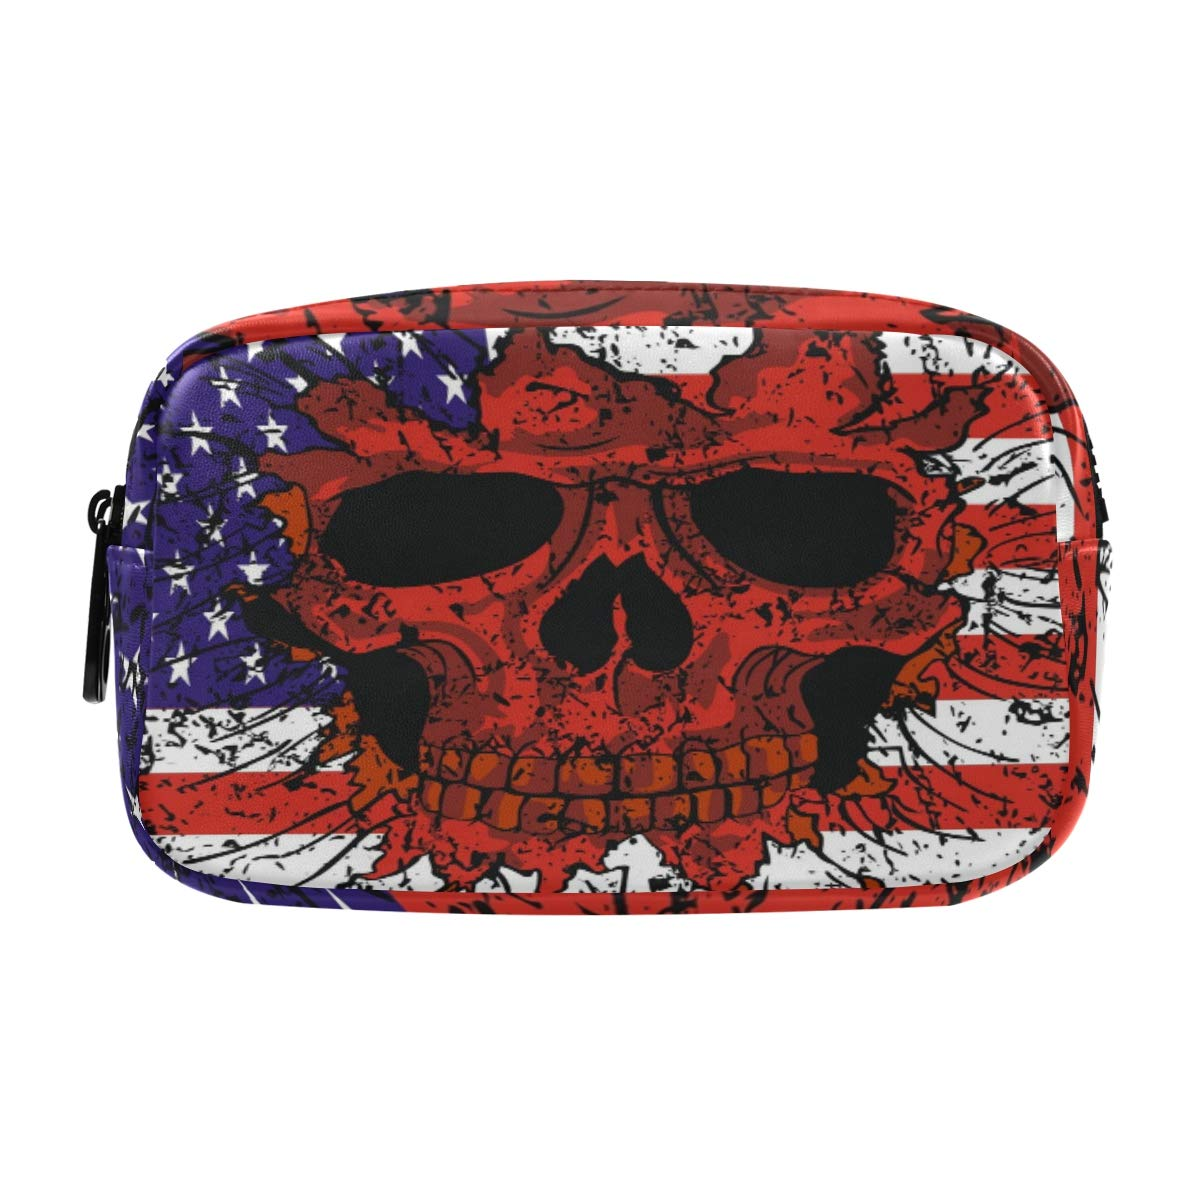 ALAZA American Flag Skull Vintage Cosmetic Bag Leather Pencil Case Waterproof Portable Travel Makeup Pouch with Zipper for Women Girls Teens